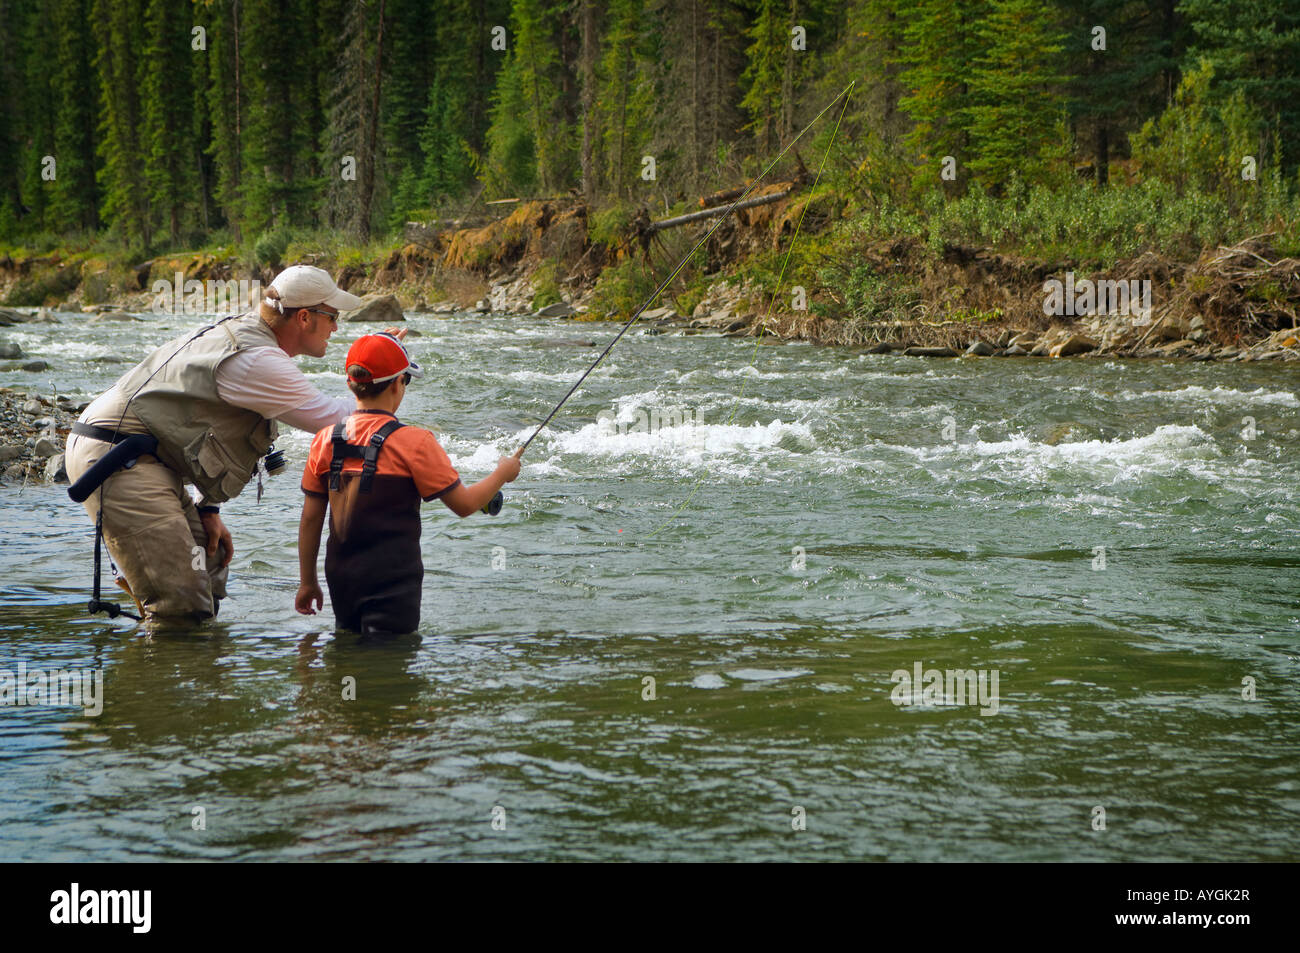 Nordegg alberta canada father and sons fly fishing in a for Father son fishing